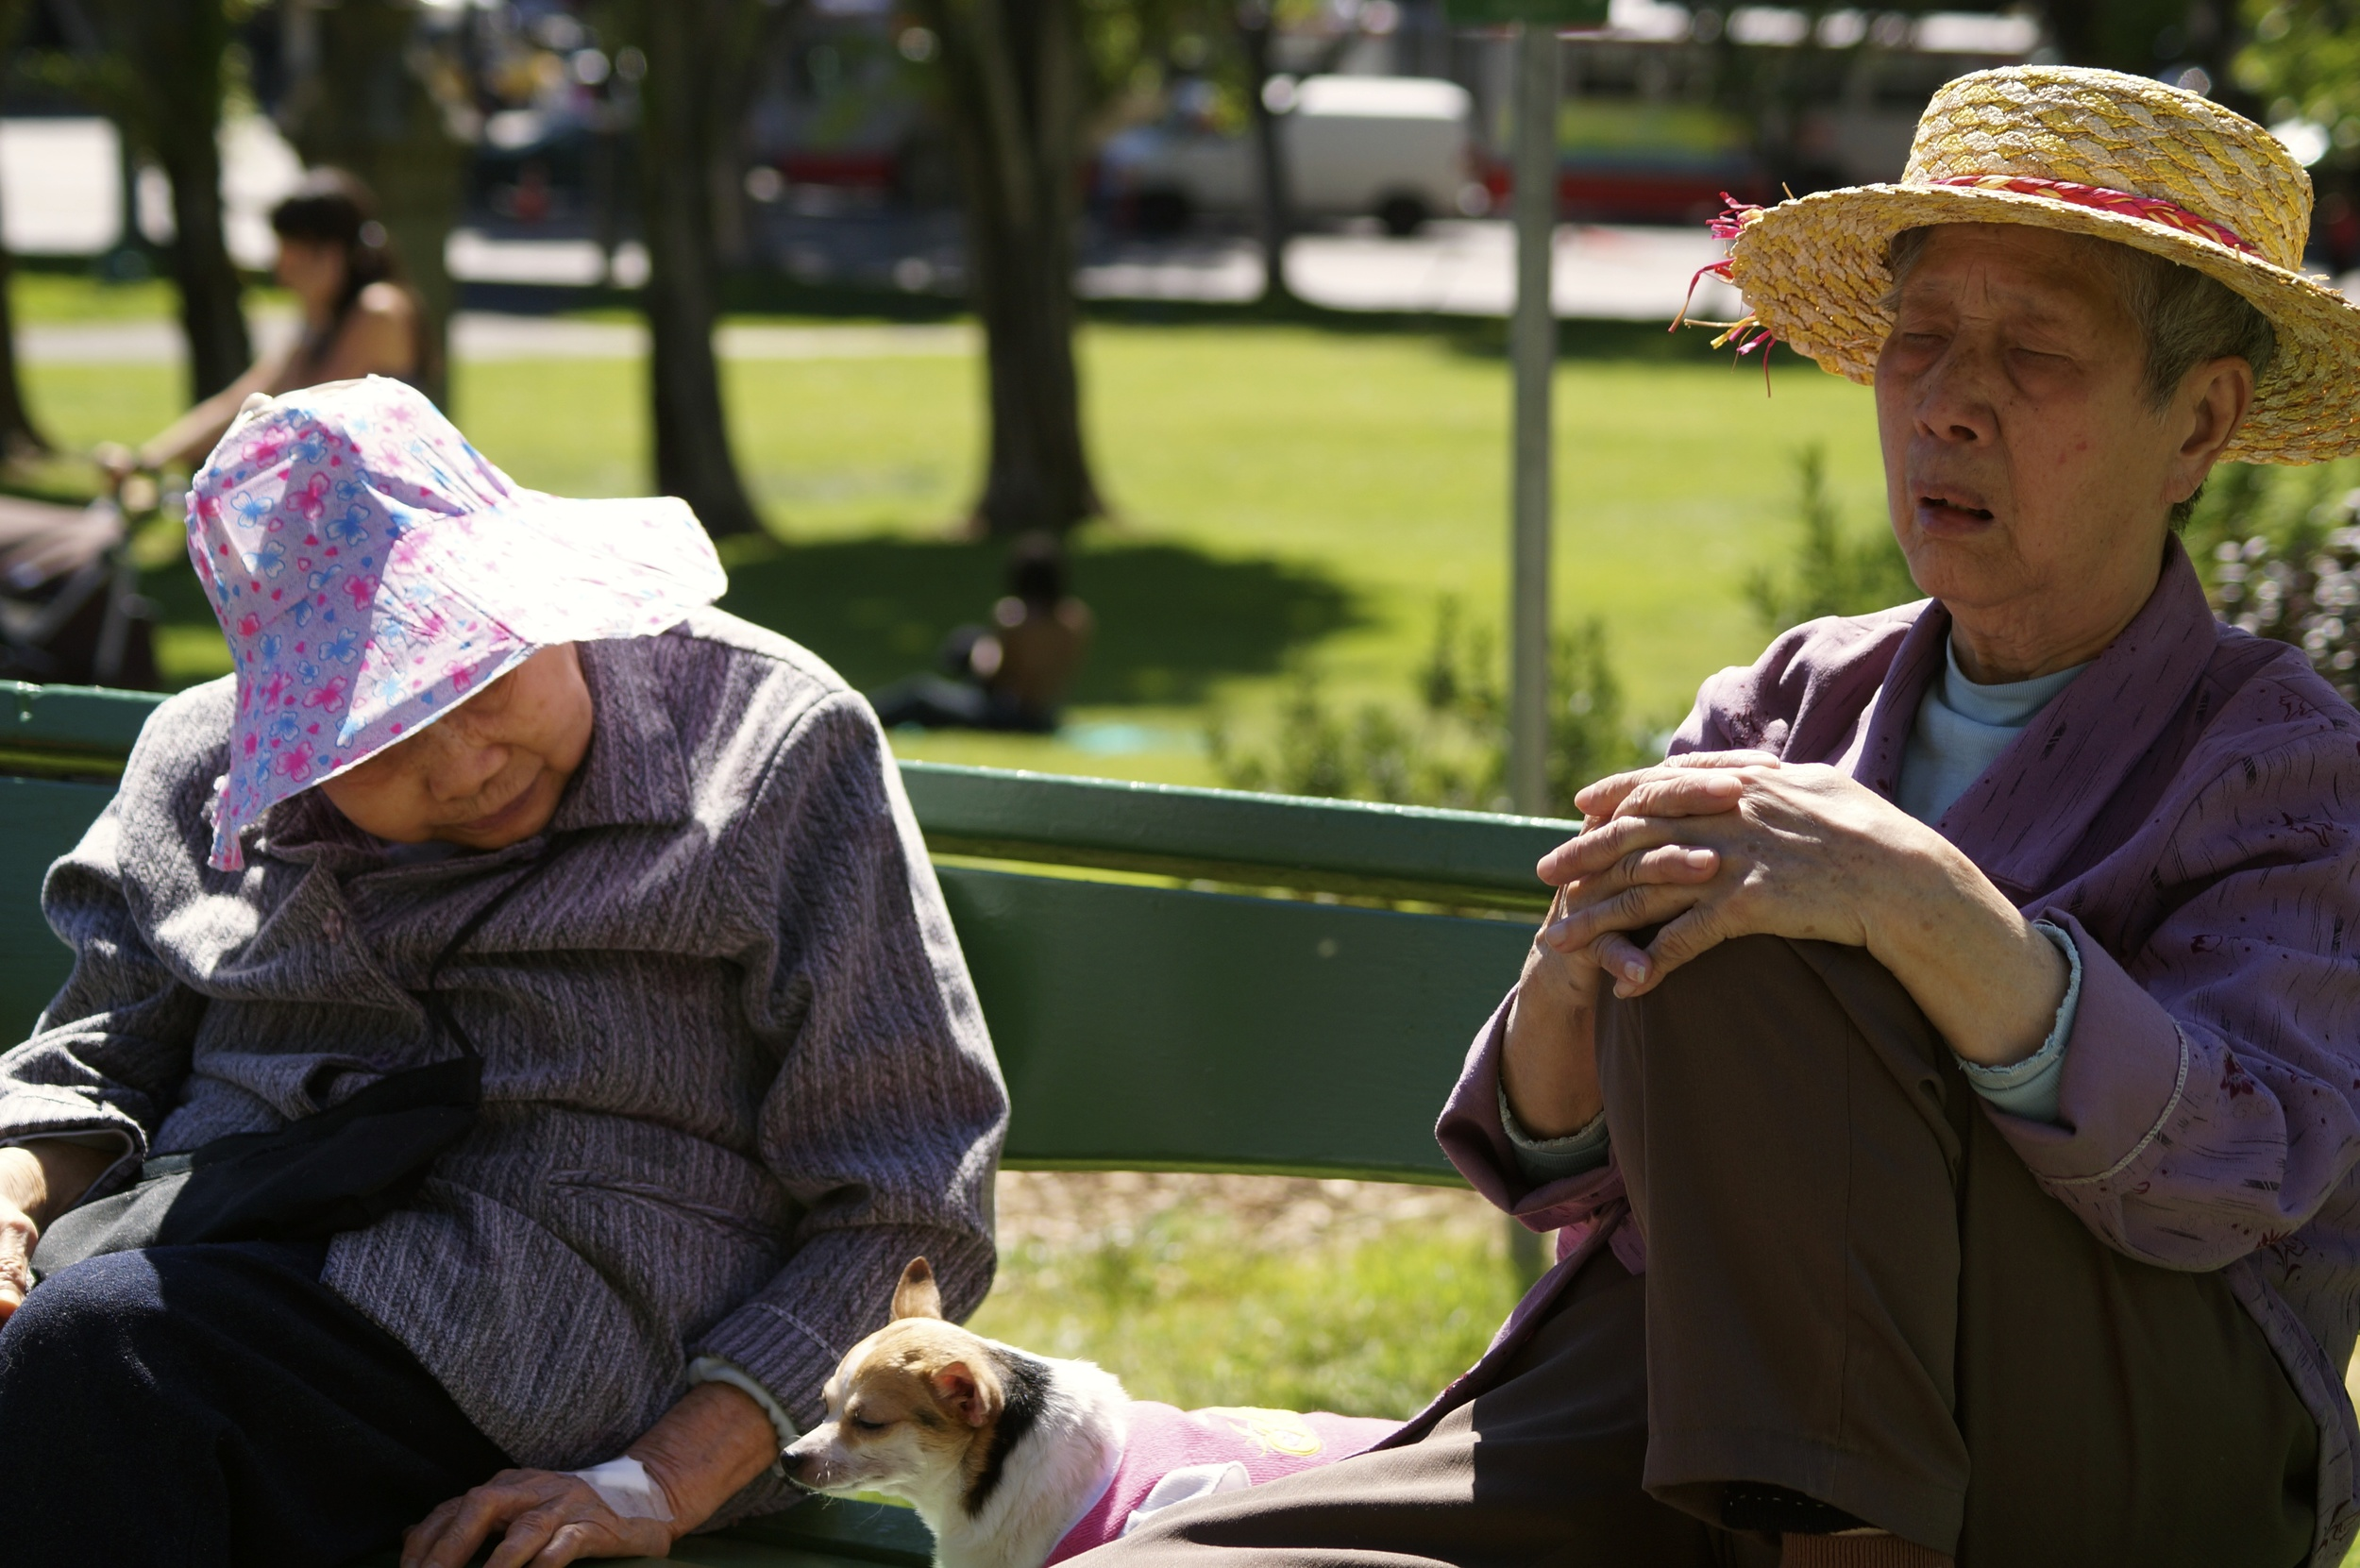 Napping couple, Washington Square Park, San Francisco